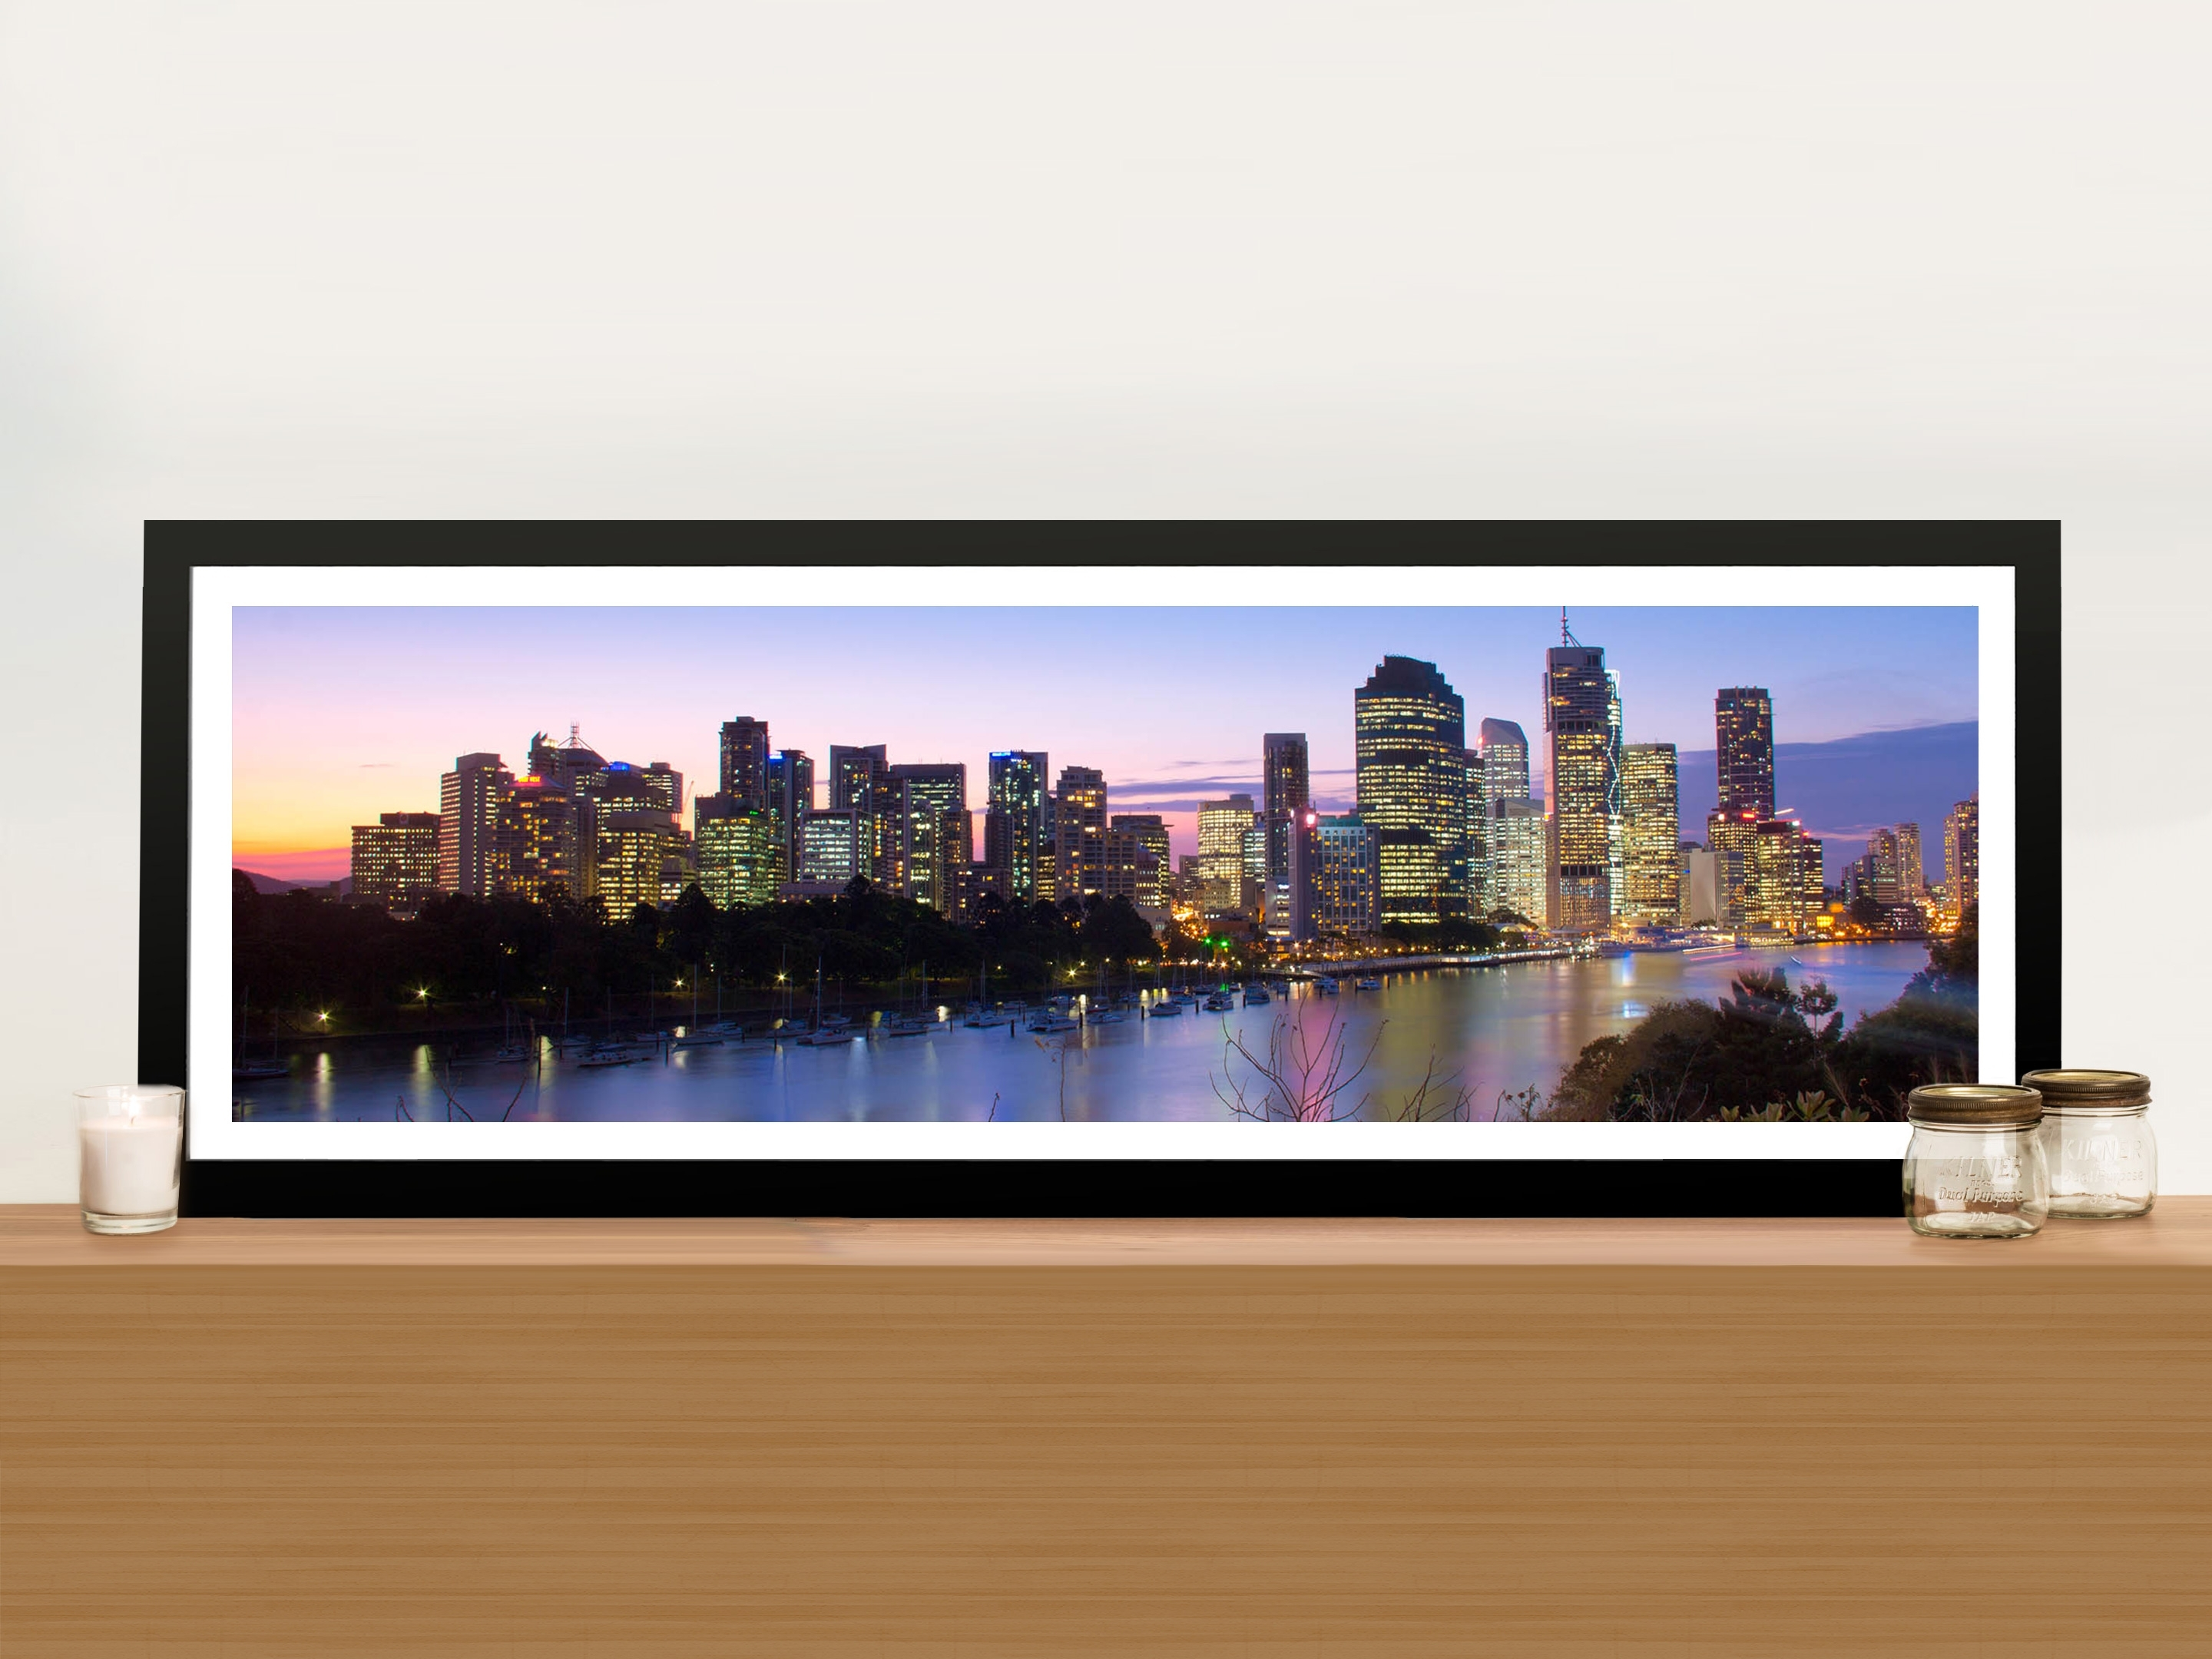 Brisbane Skyline In Panoramic View Picture Art Print On Canvas inside Panoramic Wall Art (Image 5 of 20)